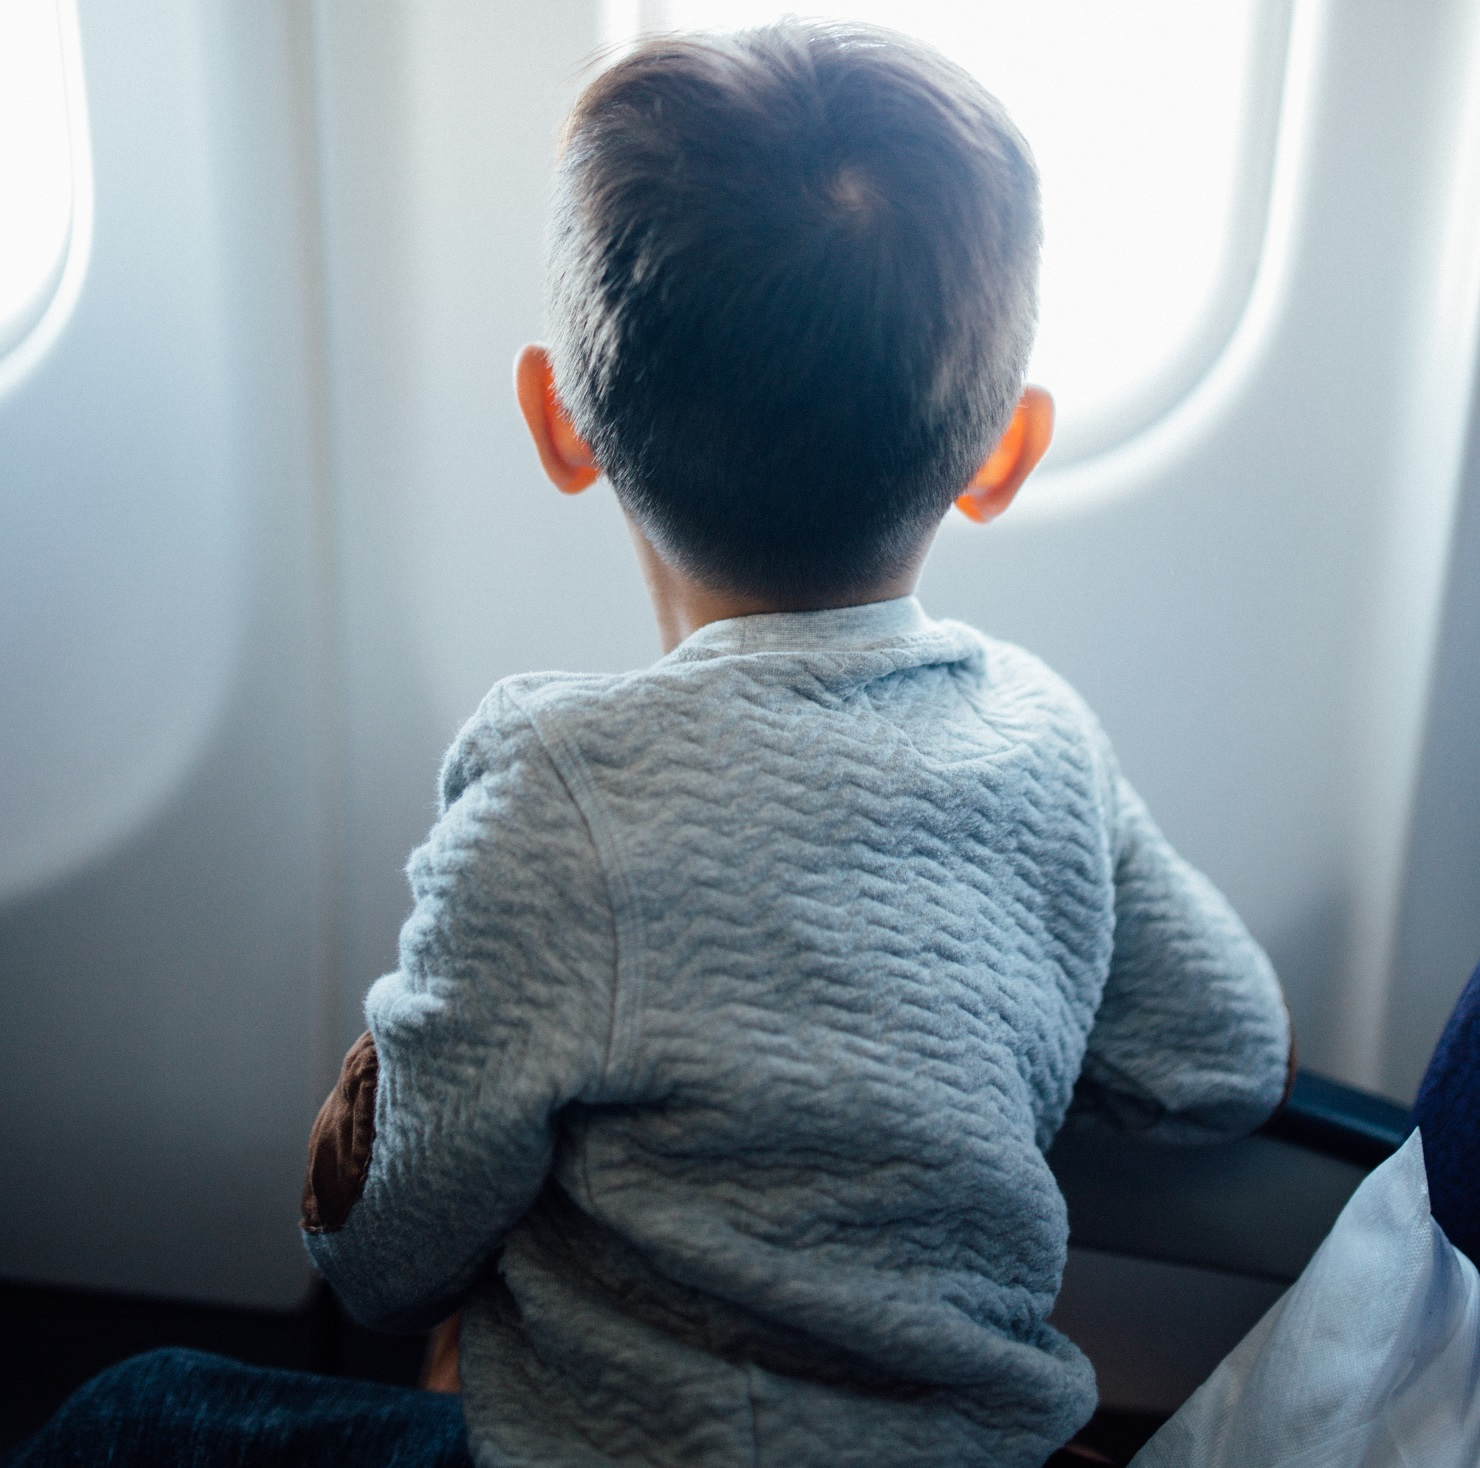 child looking out airplane window